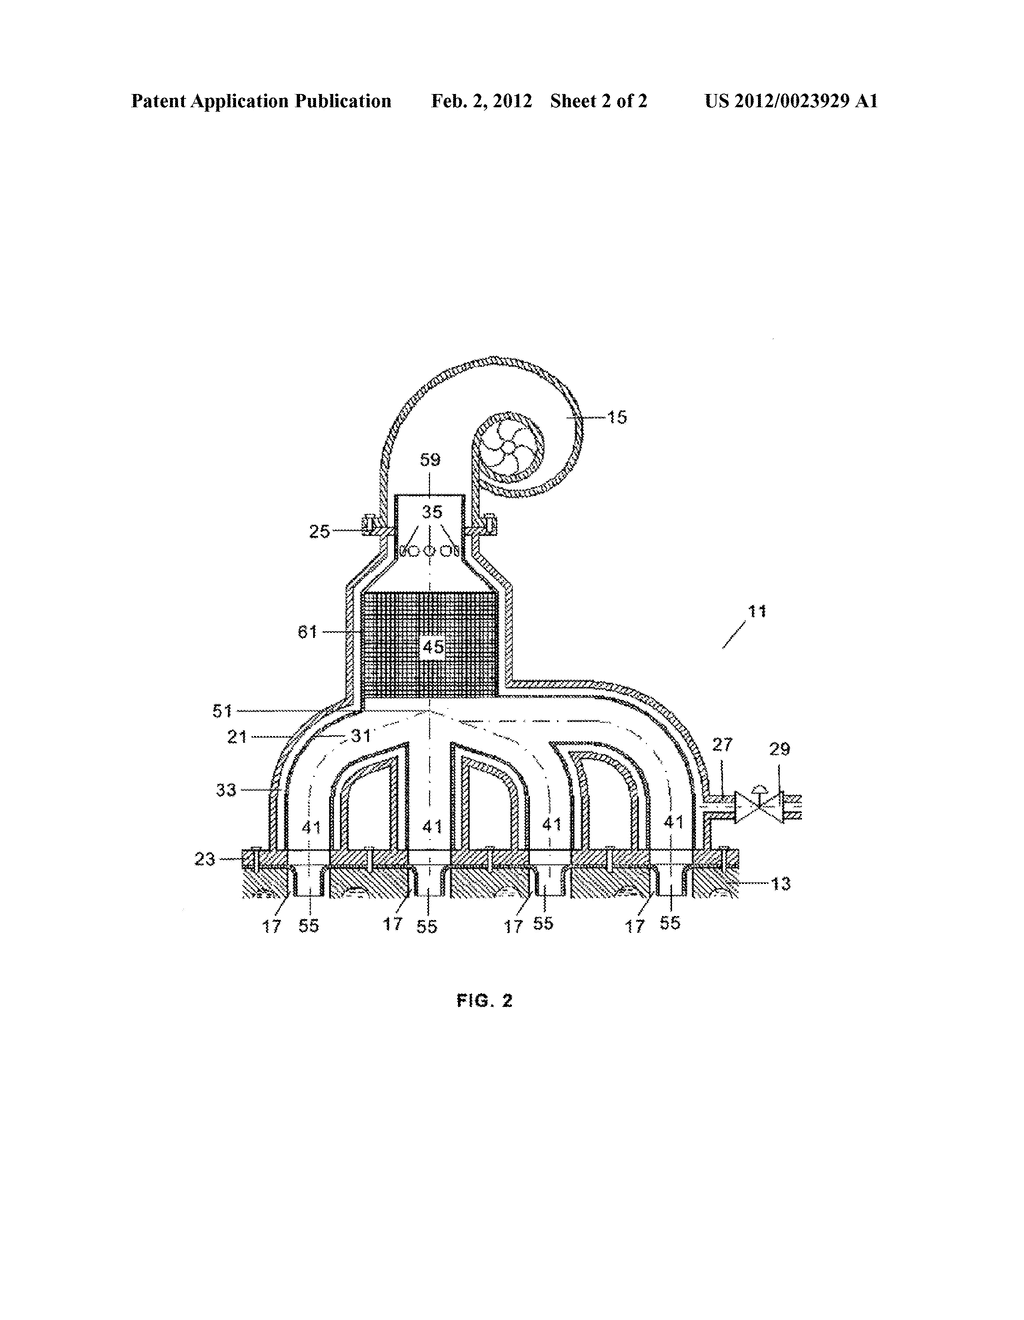 hight resolution of exhaust manifold of a turbo supercharged reciprocating engine mercruiser exhaust manifold diagram diagram exhaust manifold